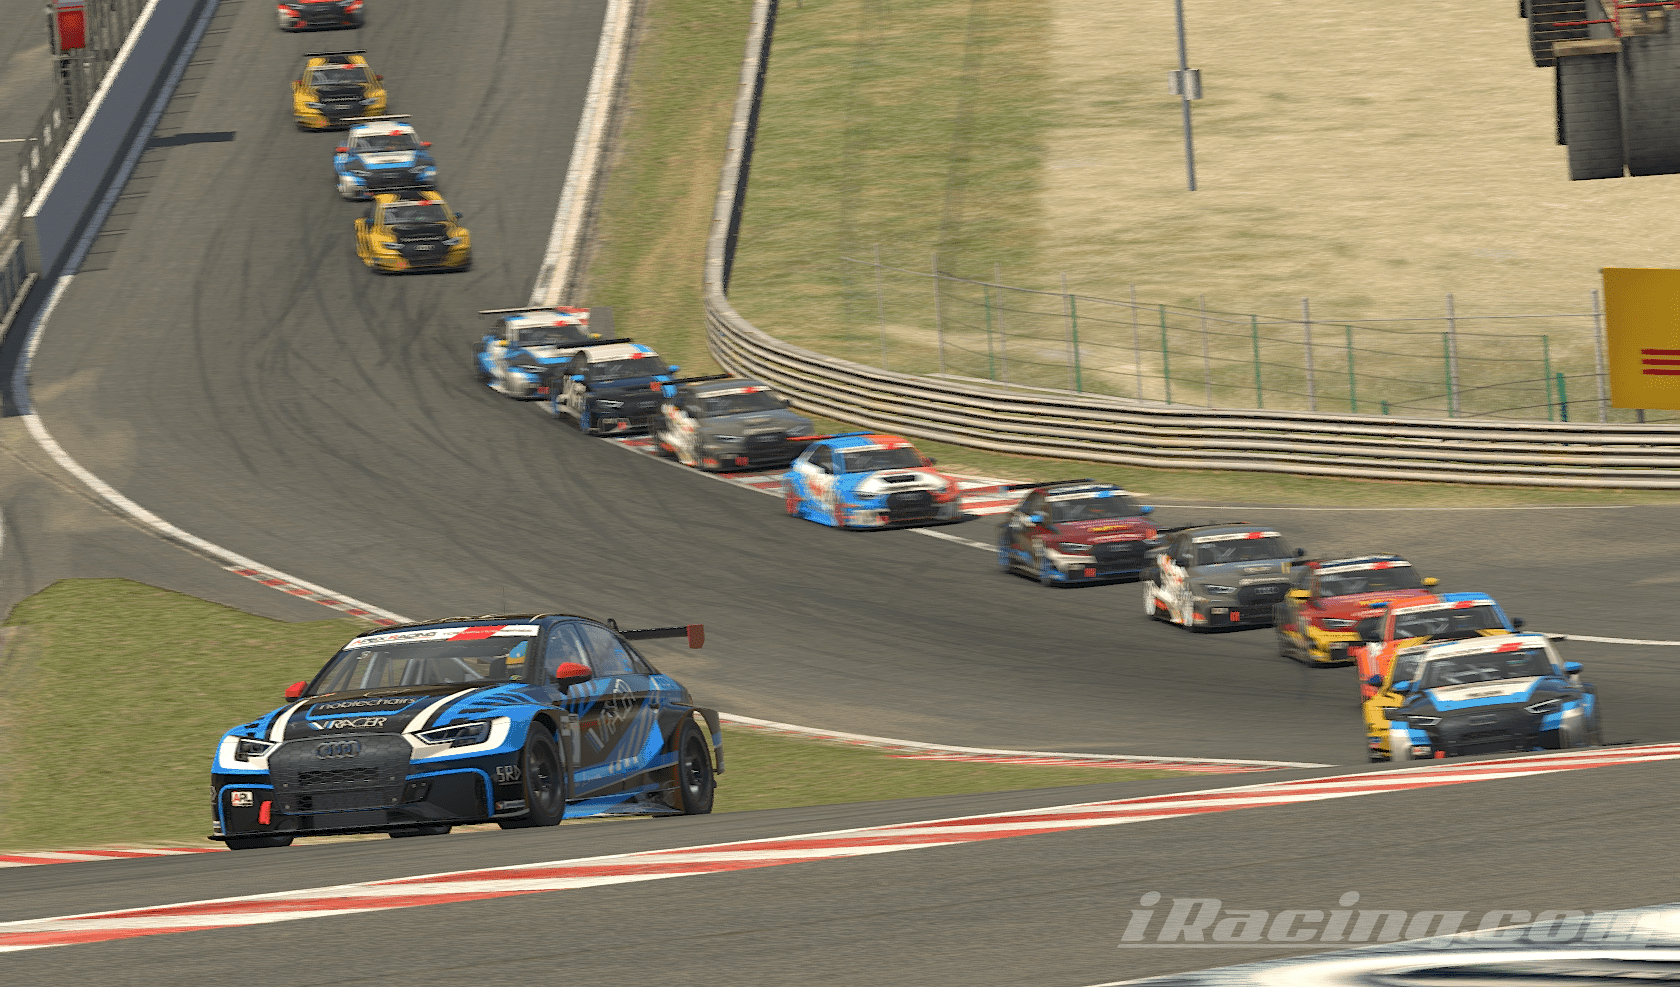 ARL TCR Winter Series 2019/20 Spa 6